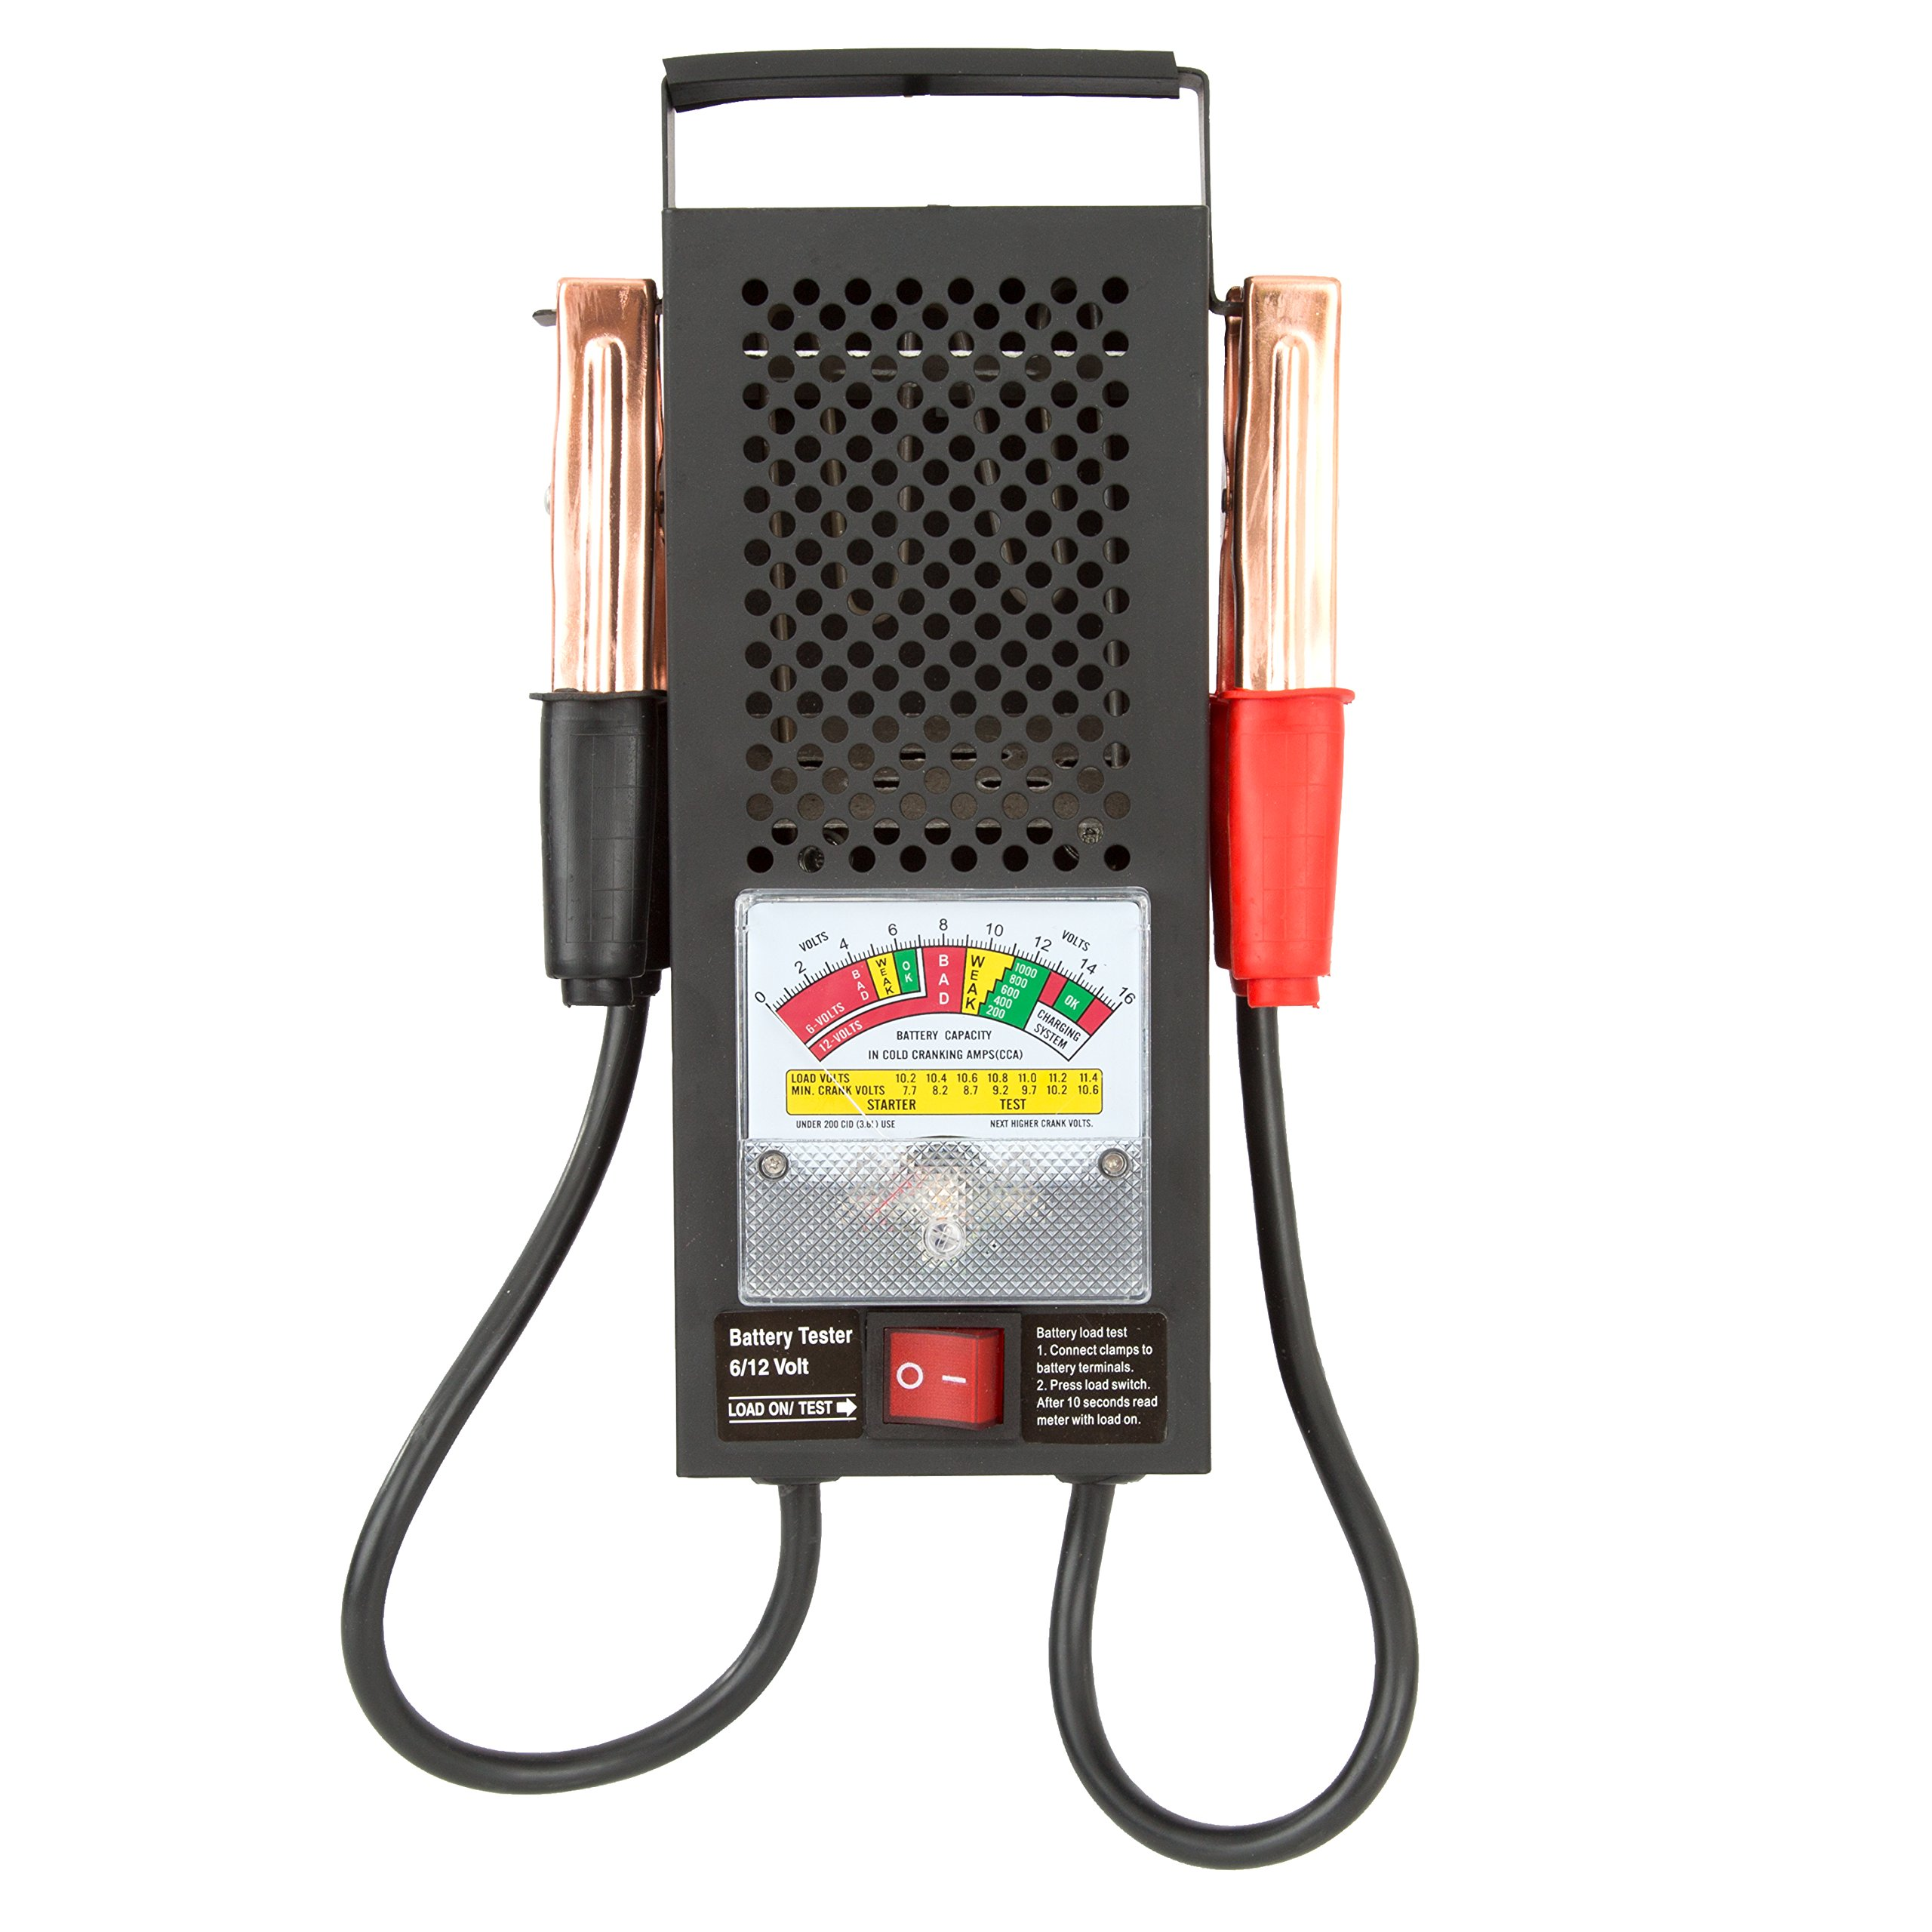 OEMTOOLS 24338 100A Battery Tester